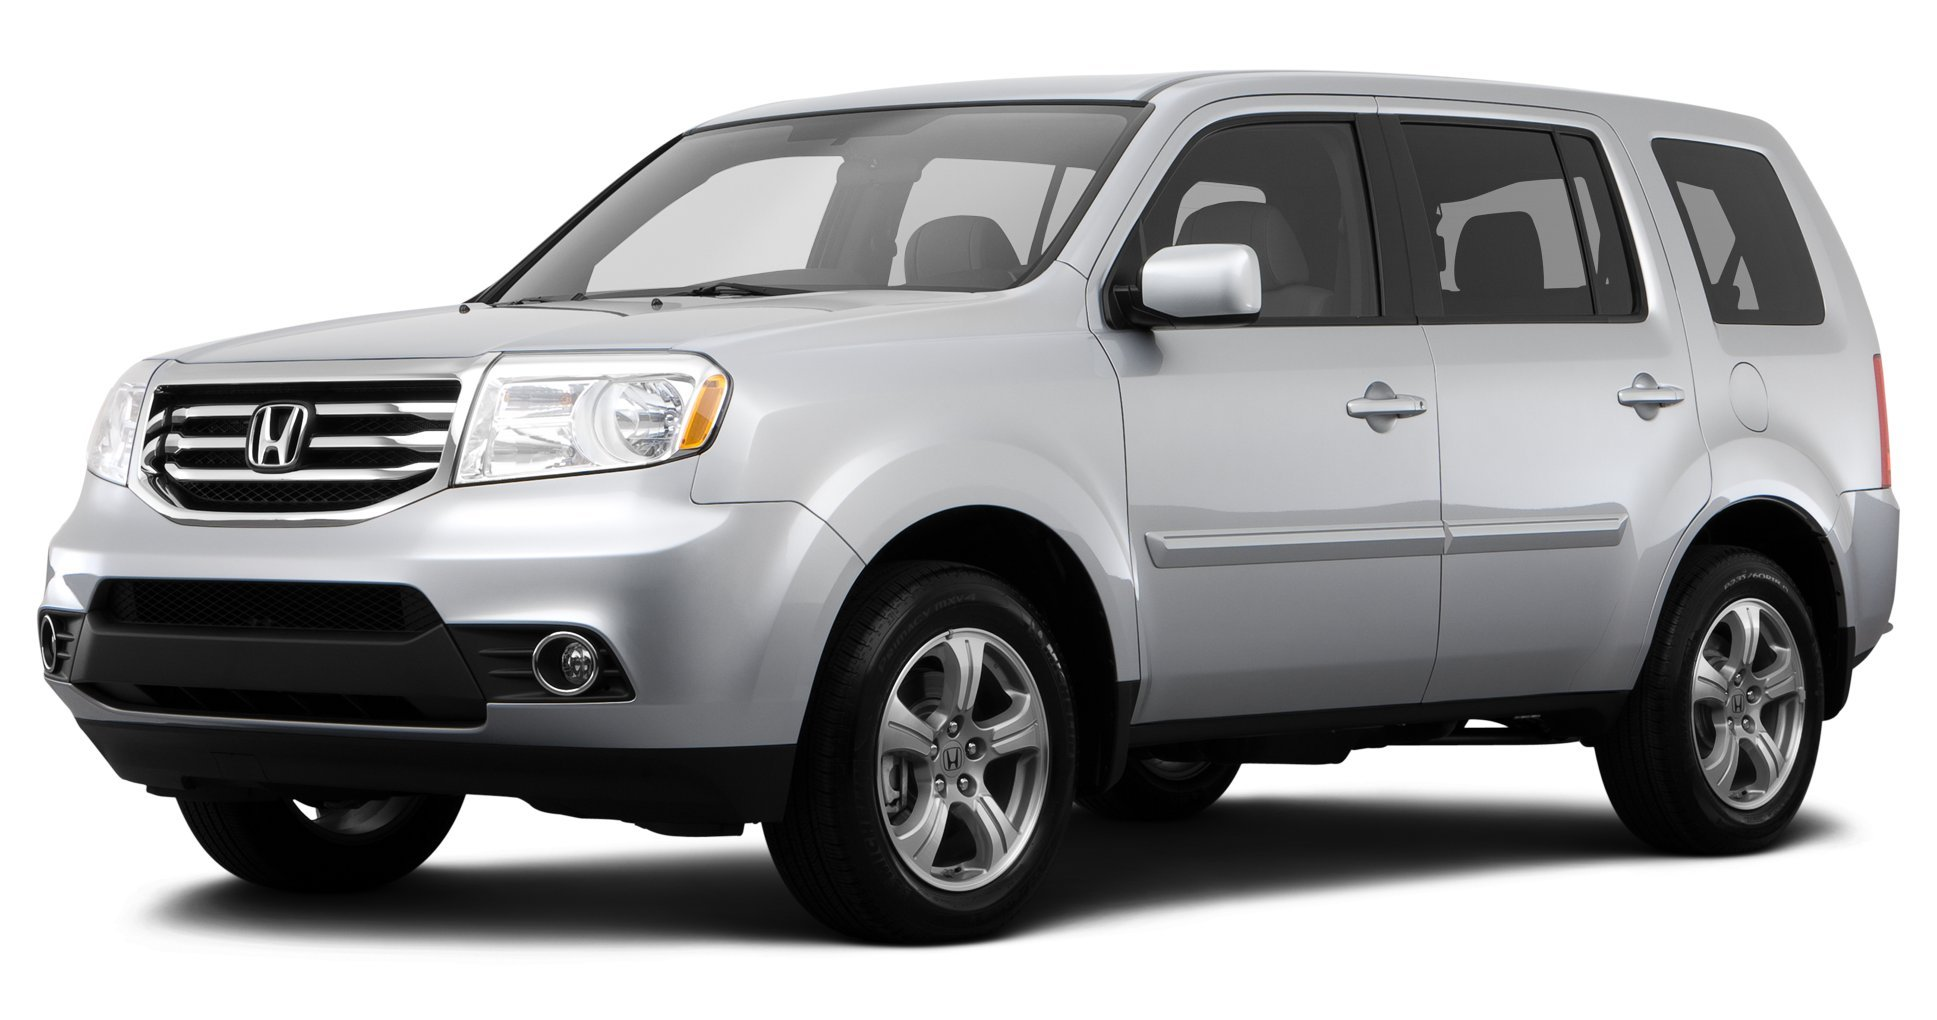 2015 Honda Pilot EX 2 Wheel Drive 4 Door